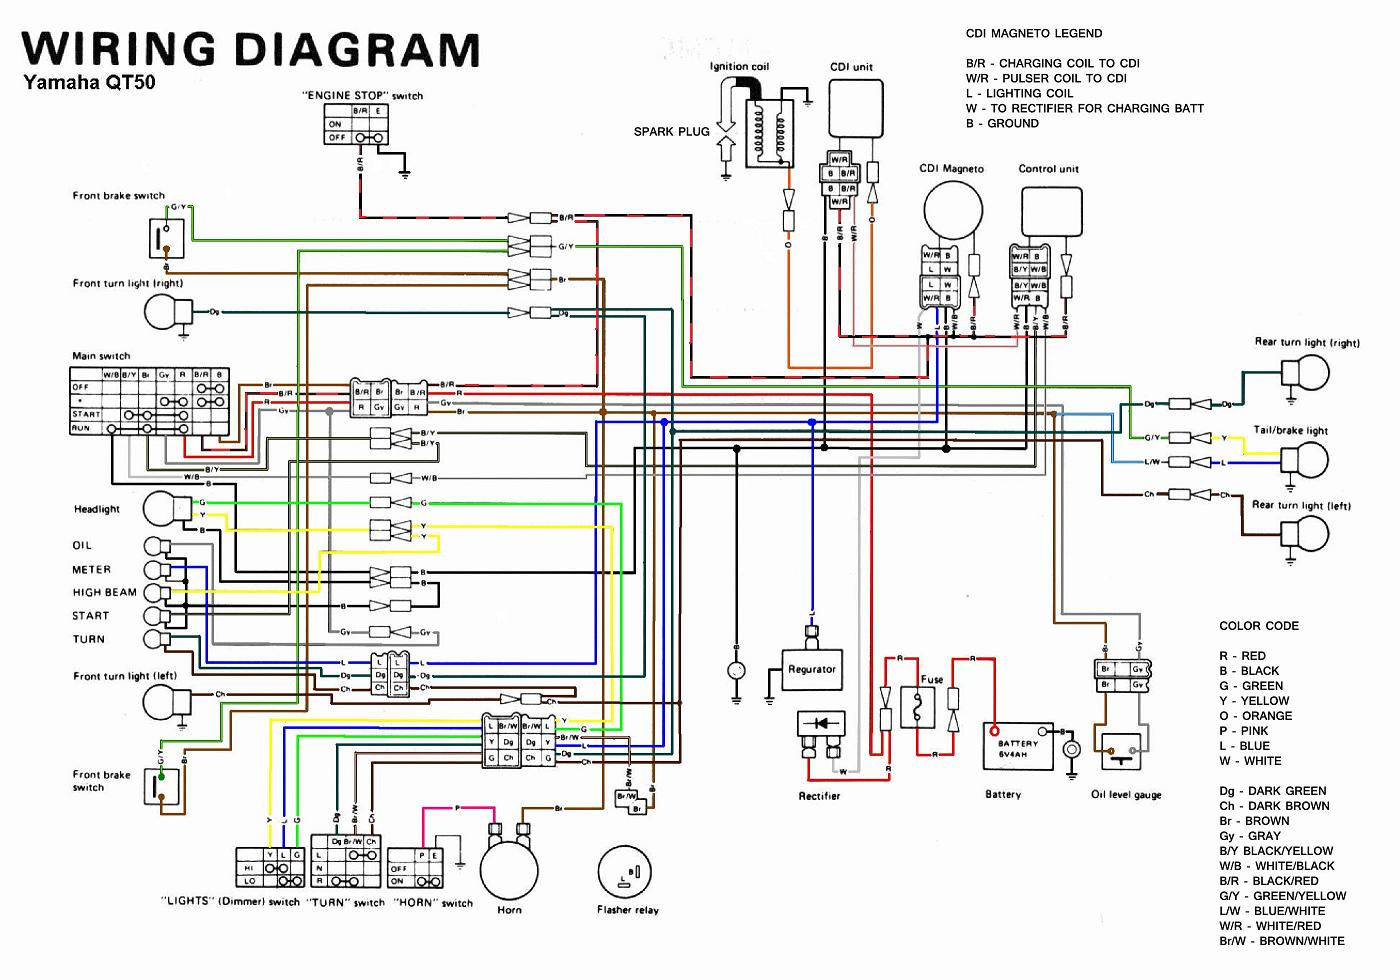 Kawasaki 250 Atv Wiring Diagram Opinions About For Bayou 300 Yamaha Qt50 Luvin And Other Nopeds 220 Schematic 185